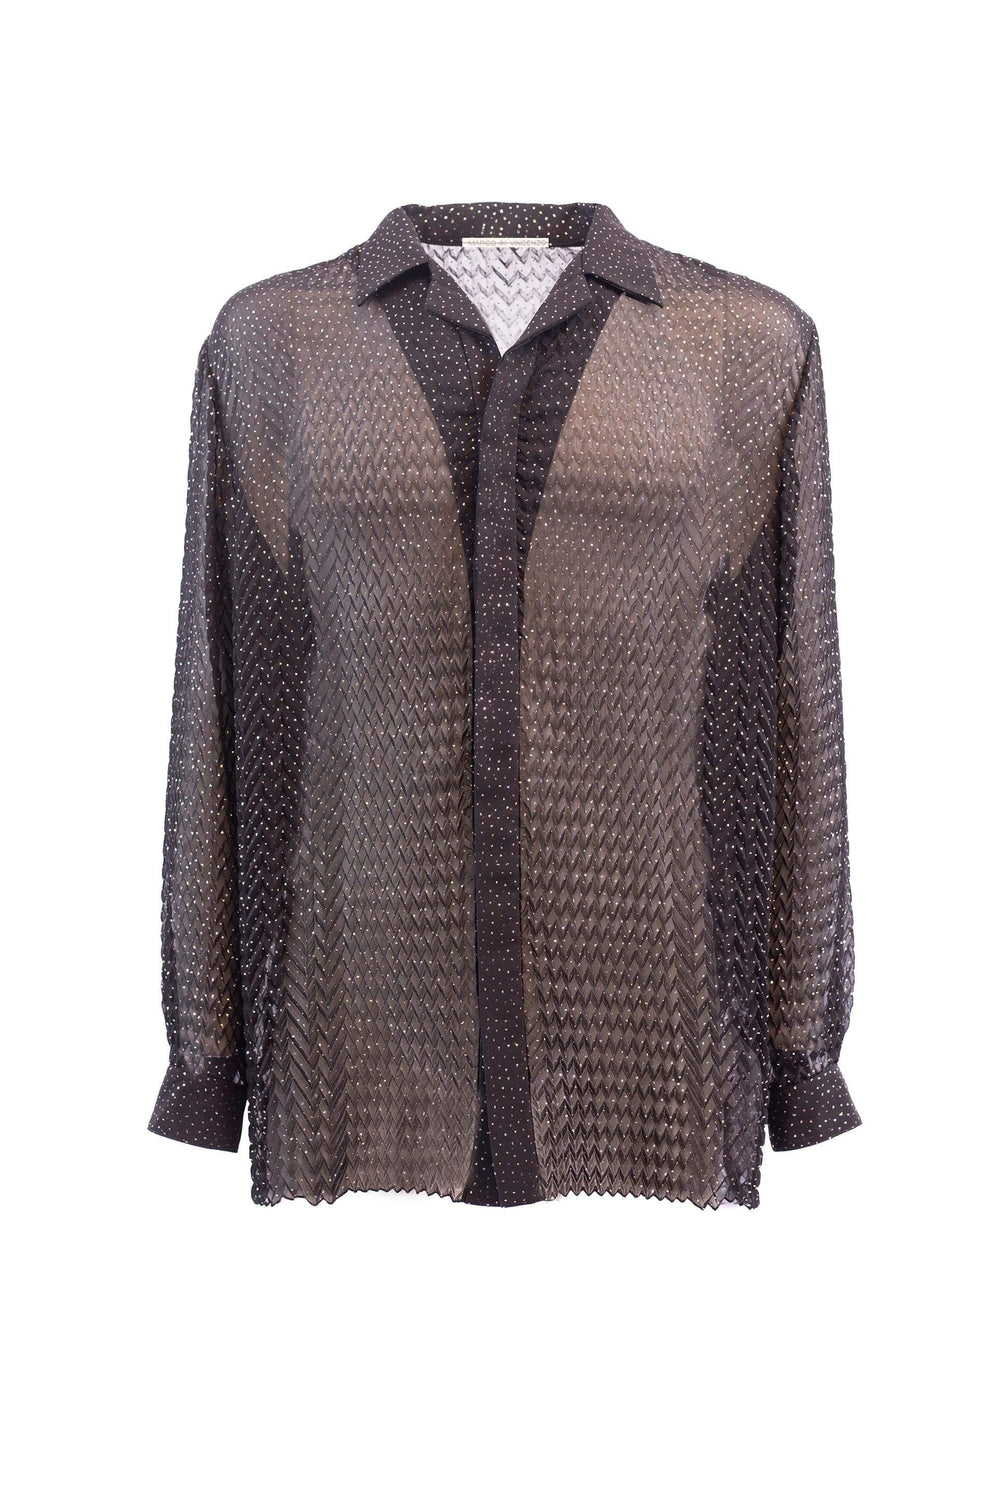 Georgette shirt with 3D effect